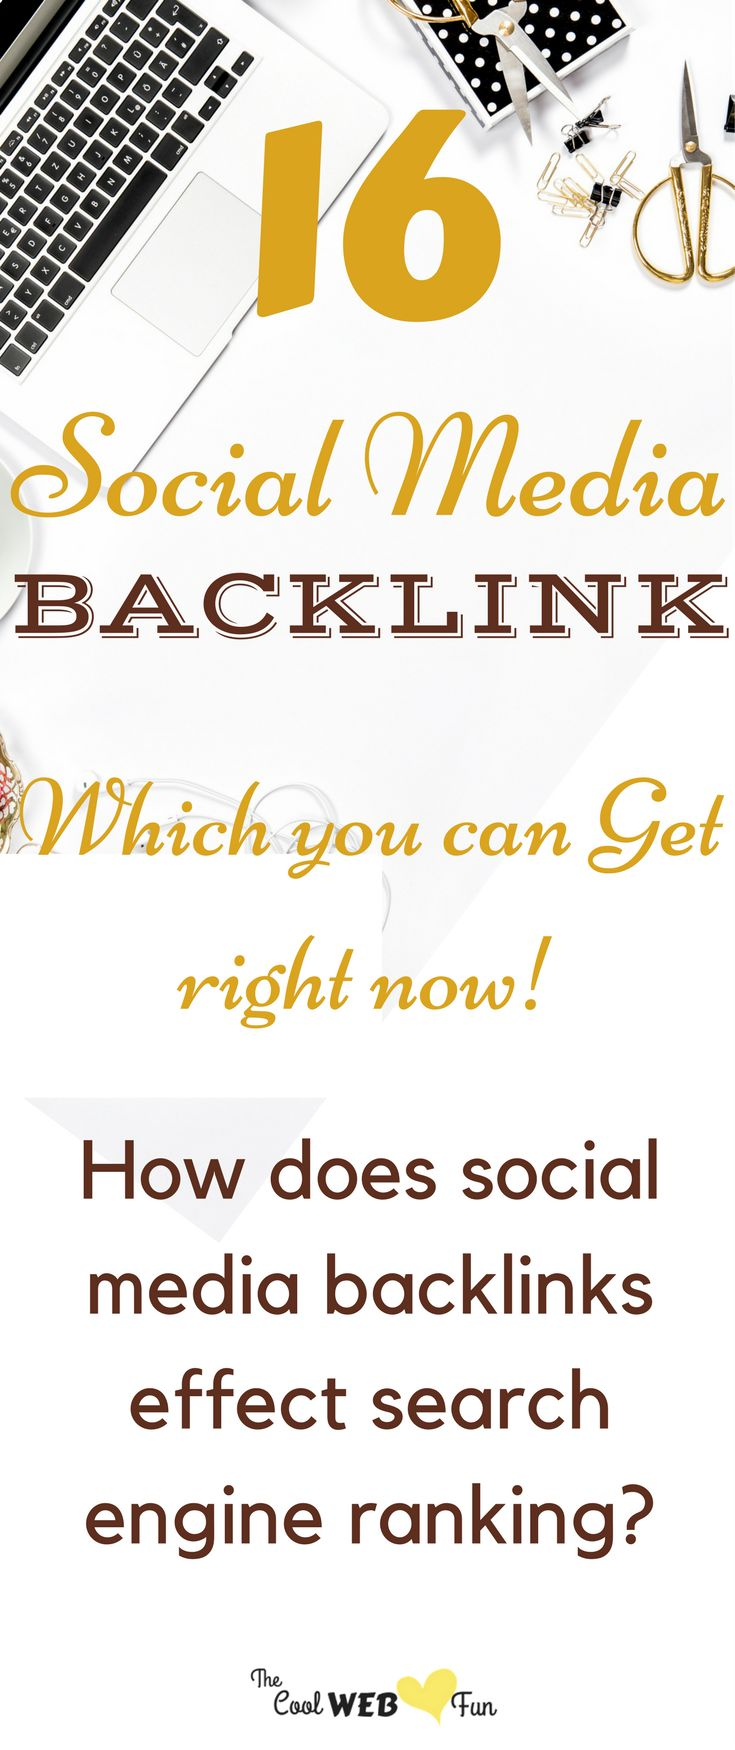 Backlinks building from social media marketing is a good way to drive traffic to website.   social media strategy http://www.coolwebfun.com/social-media-backlinks-search-engine-rankings/